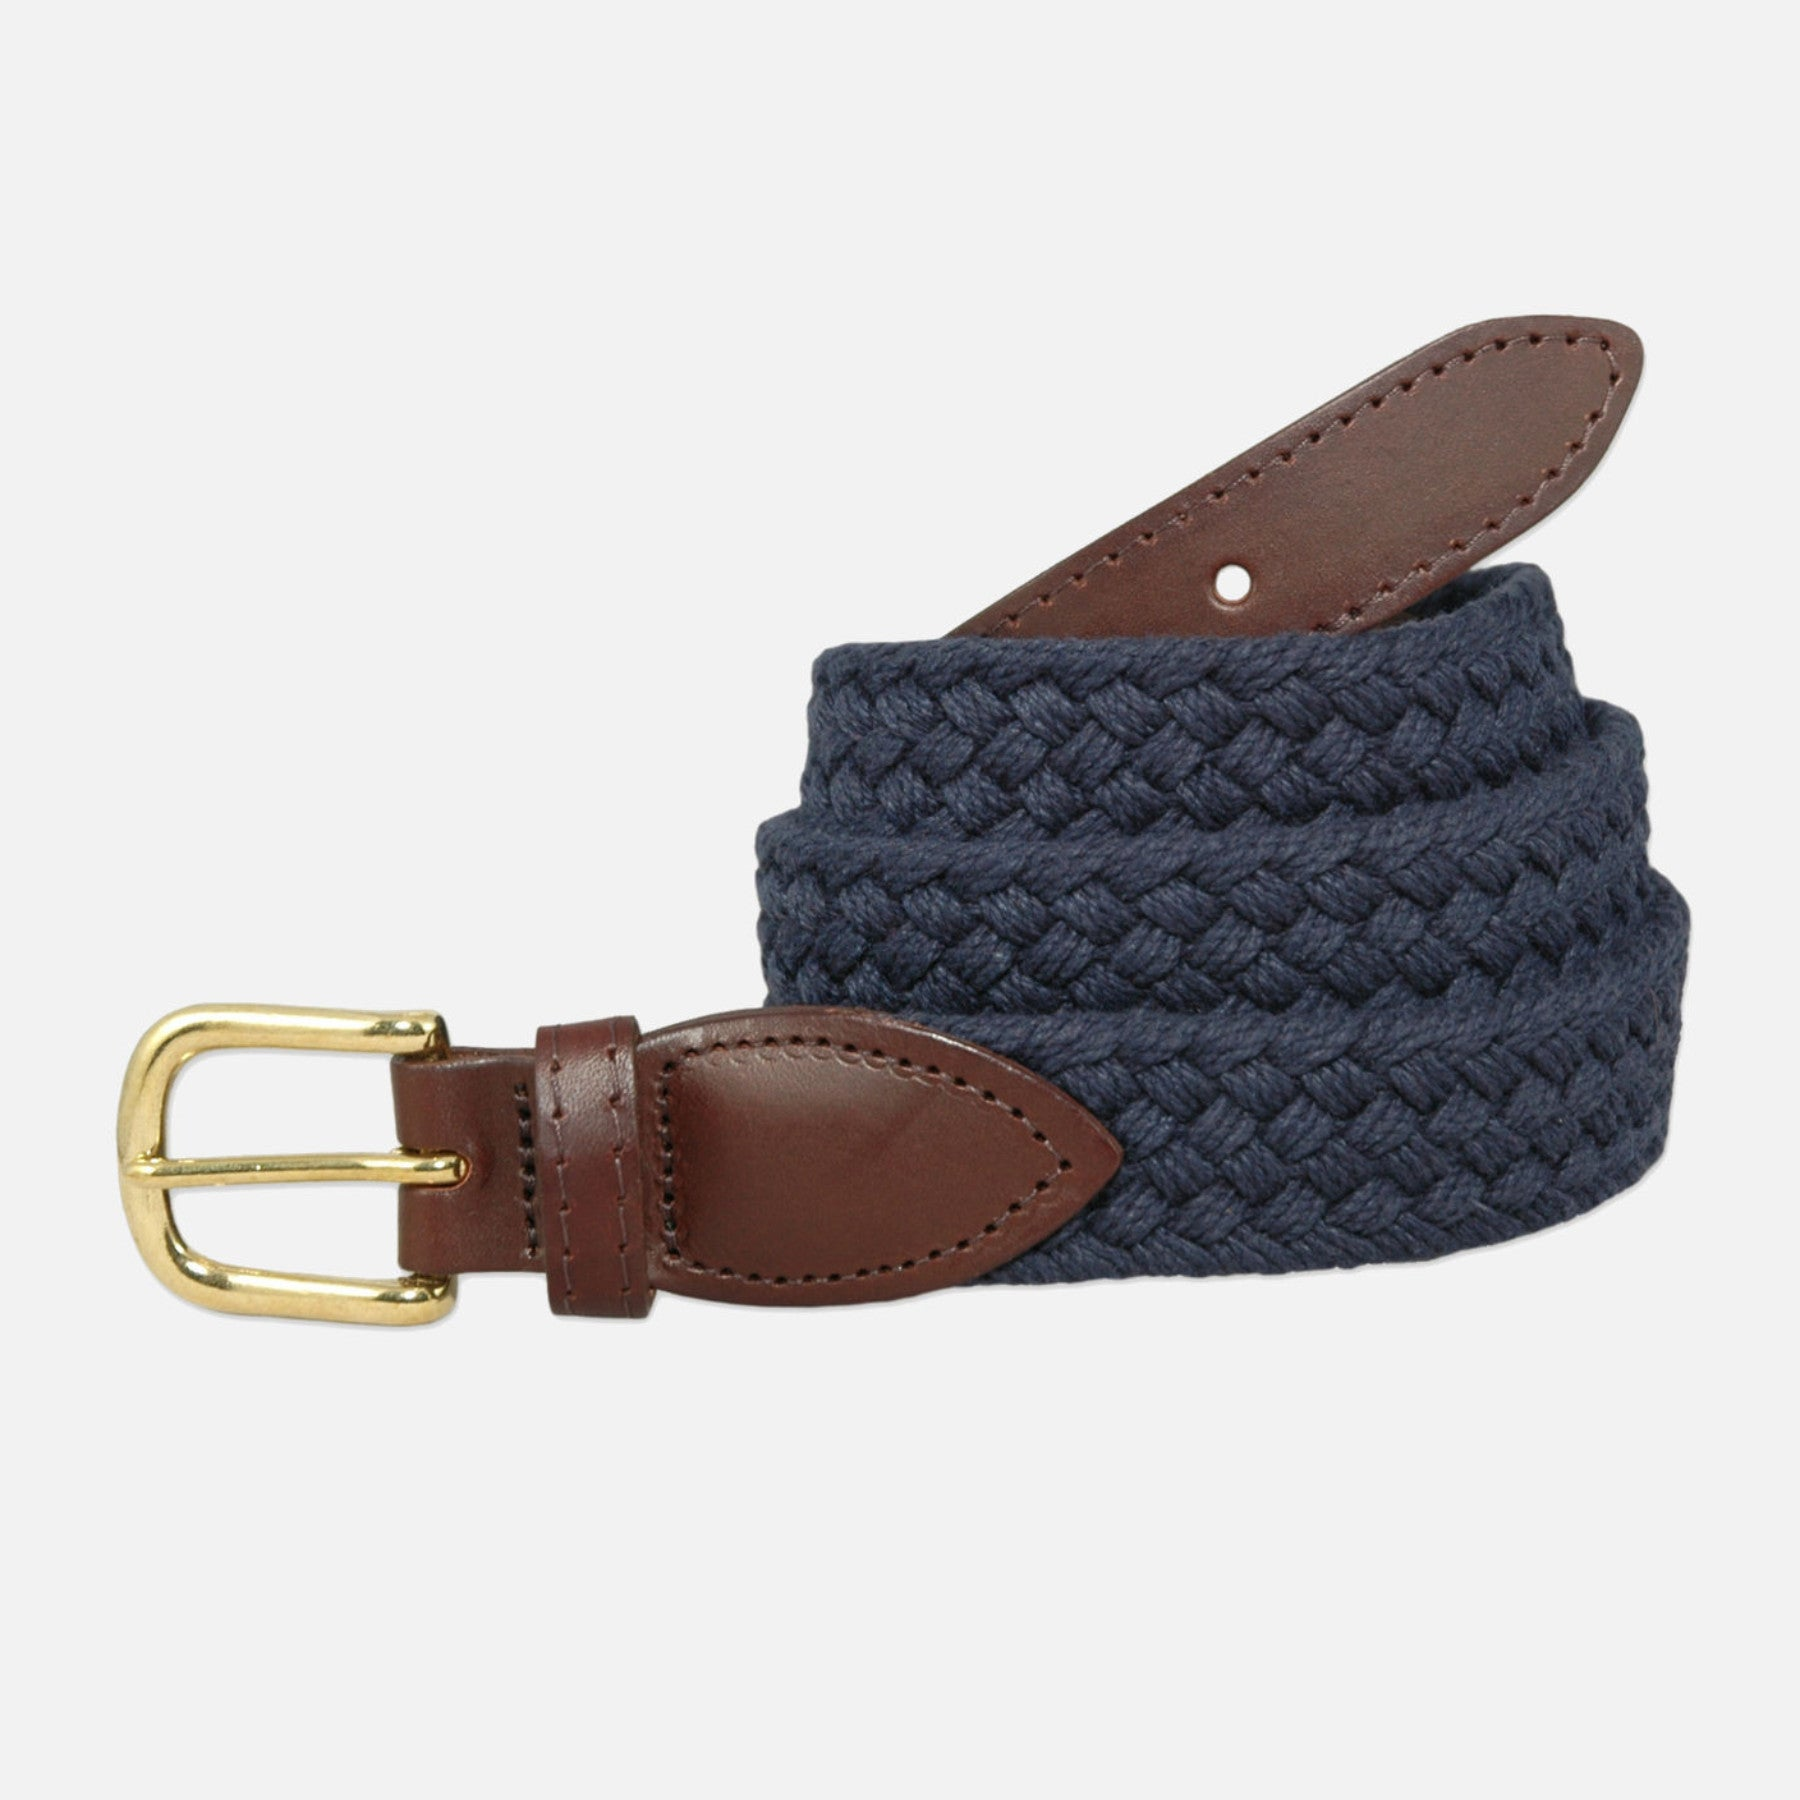 YRI Men's Braided Cotton Belt - Navy